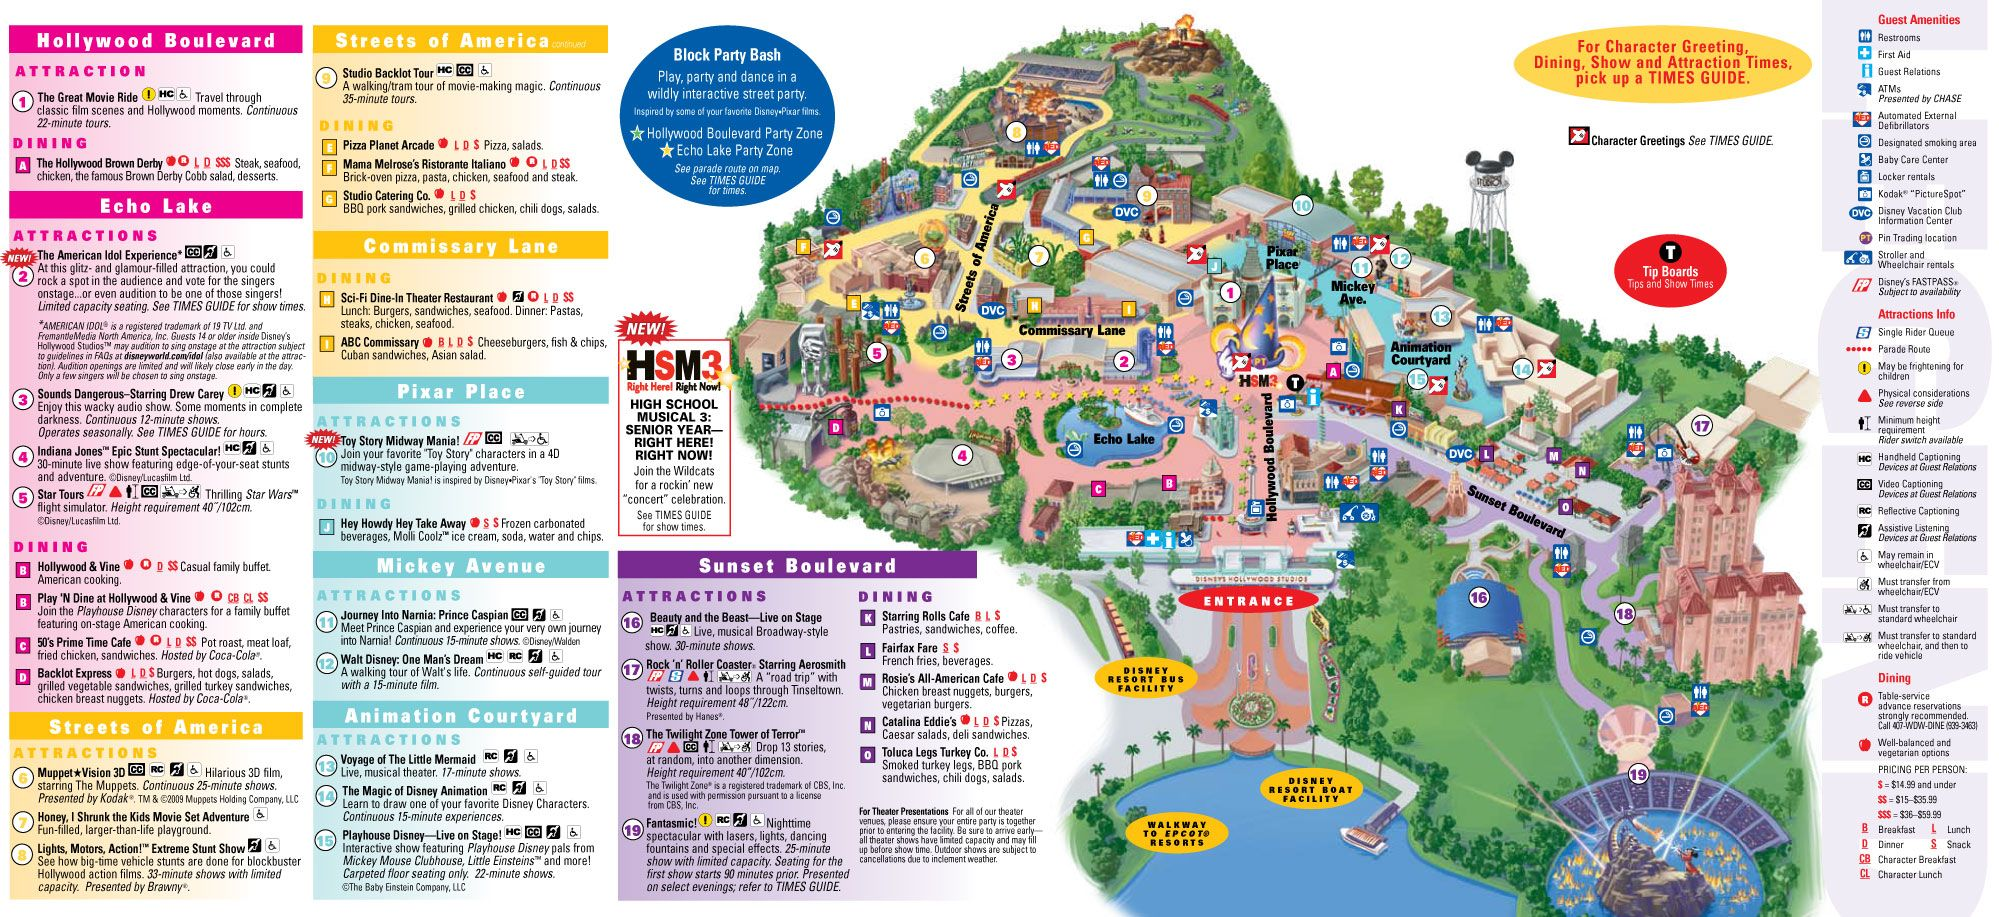 Disney hollywood studios map clicking on the pic will take you to disney hollywood studios map clicking on the pic will take you to the larger map gumiabroncs Gallery